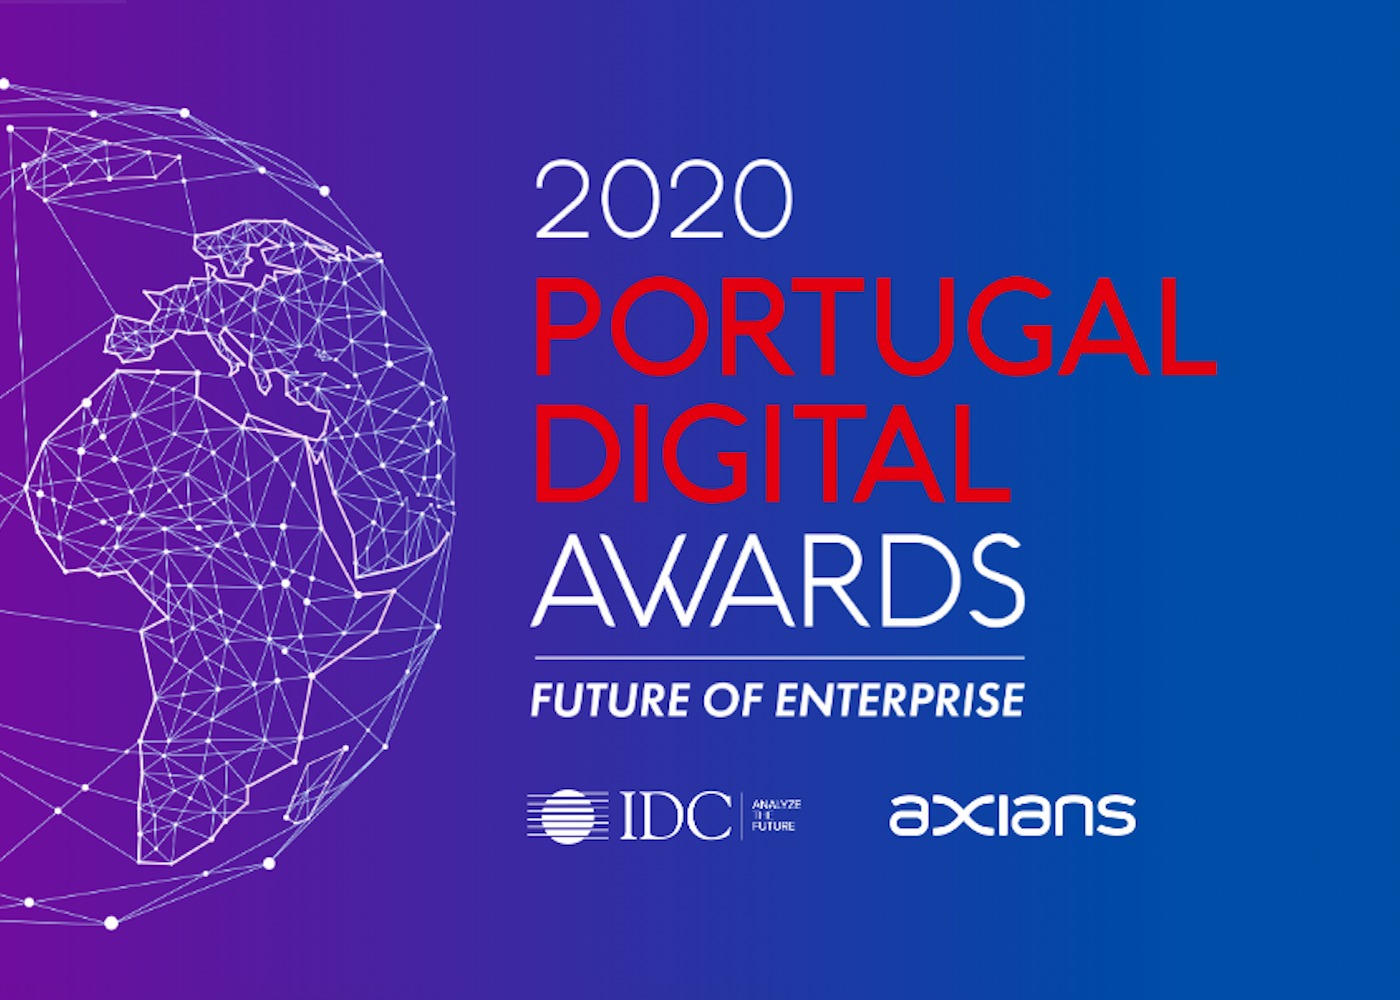 divulgação do prémio 2020 portugal digital awards